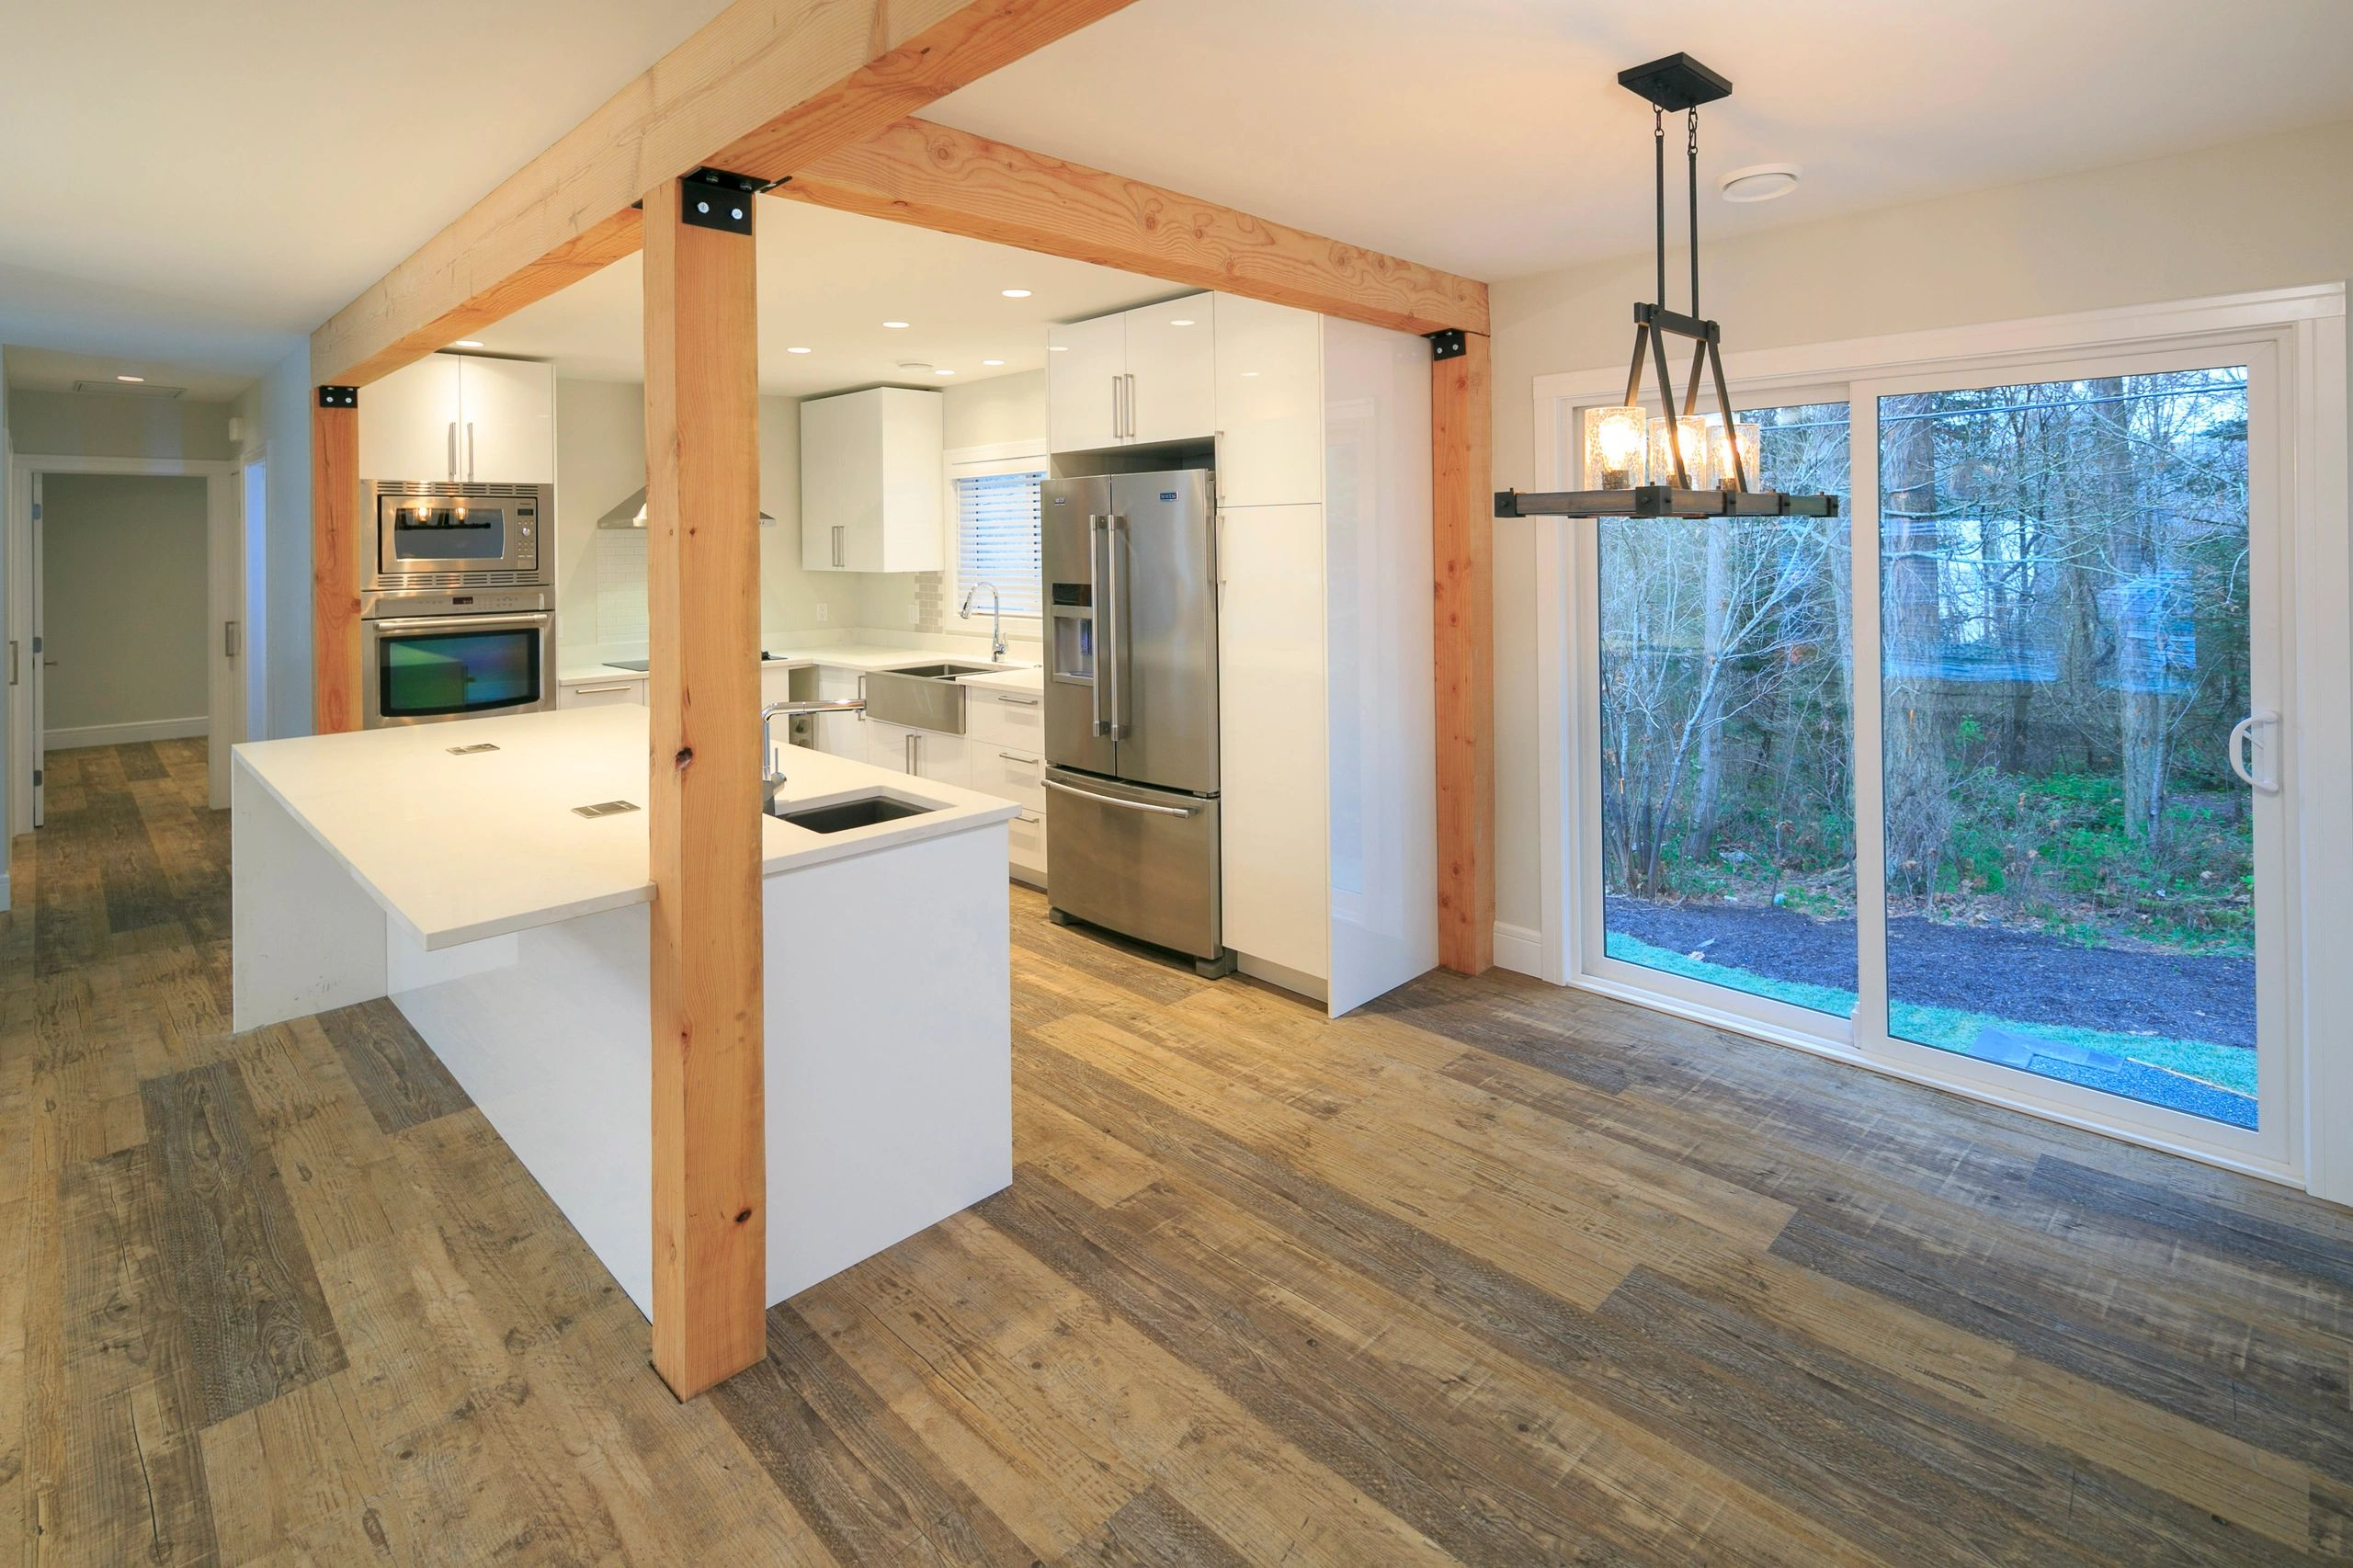 Brookridge Project - Douglas fir Timbers